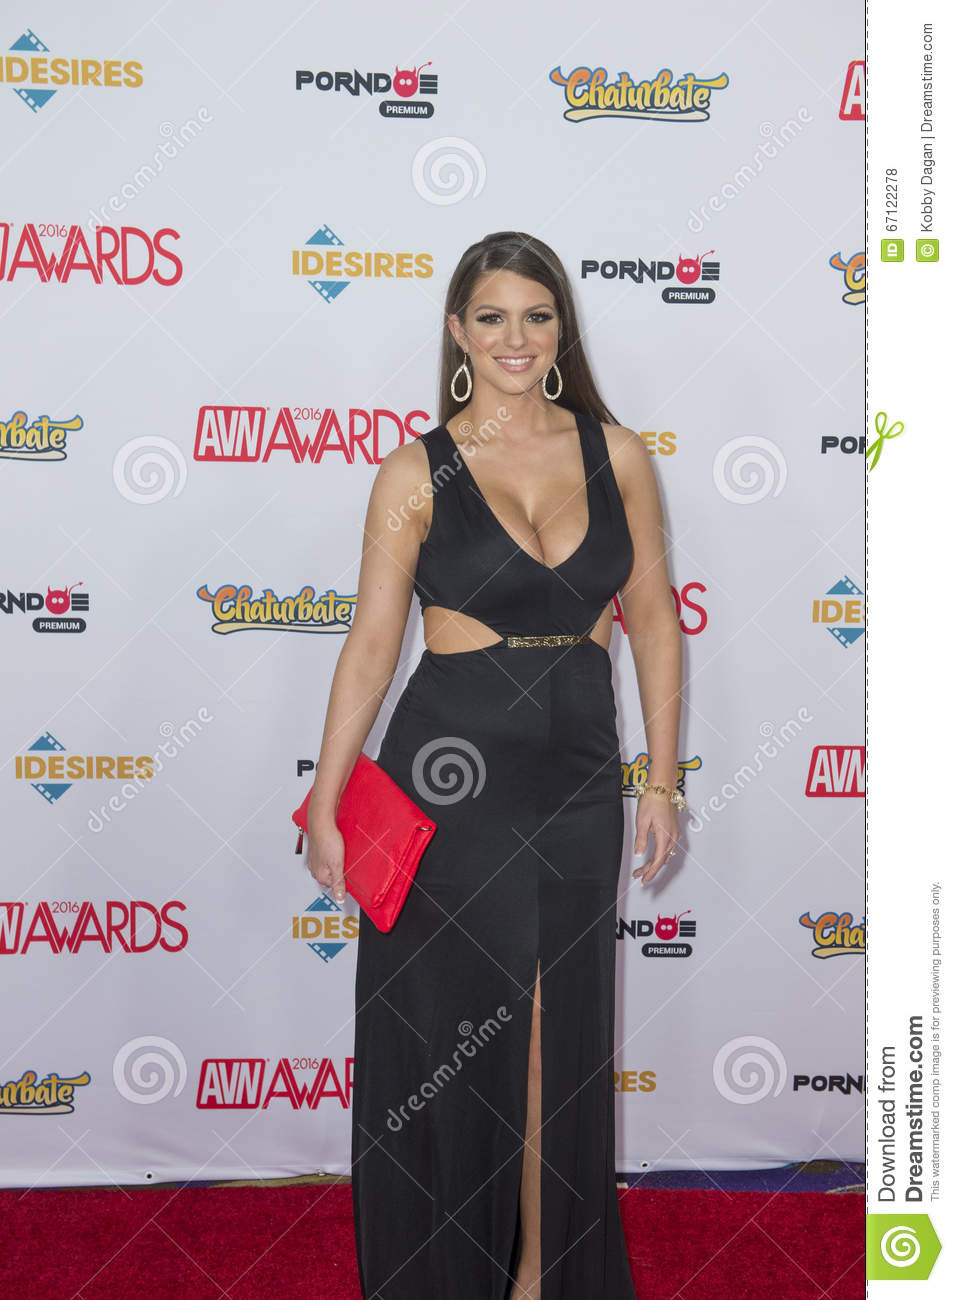 2016 Avn Awards Editorial Stock Photo Image Of Sexuality